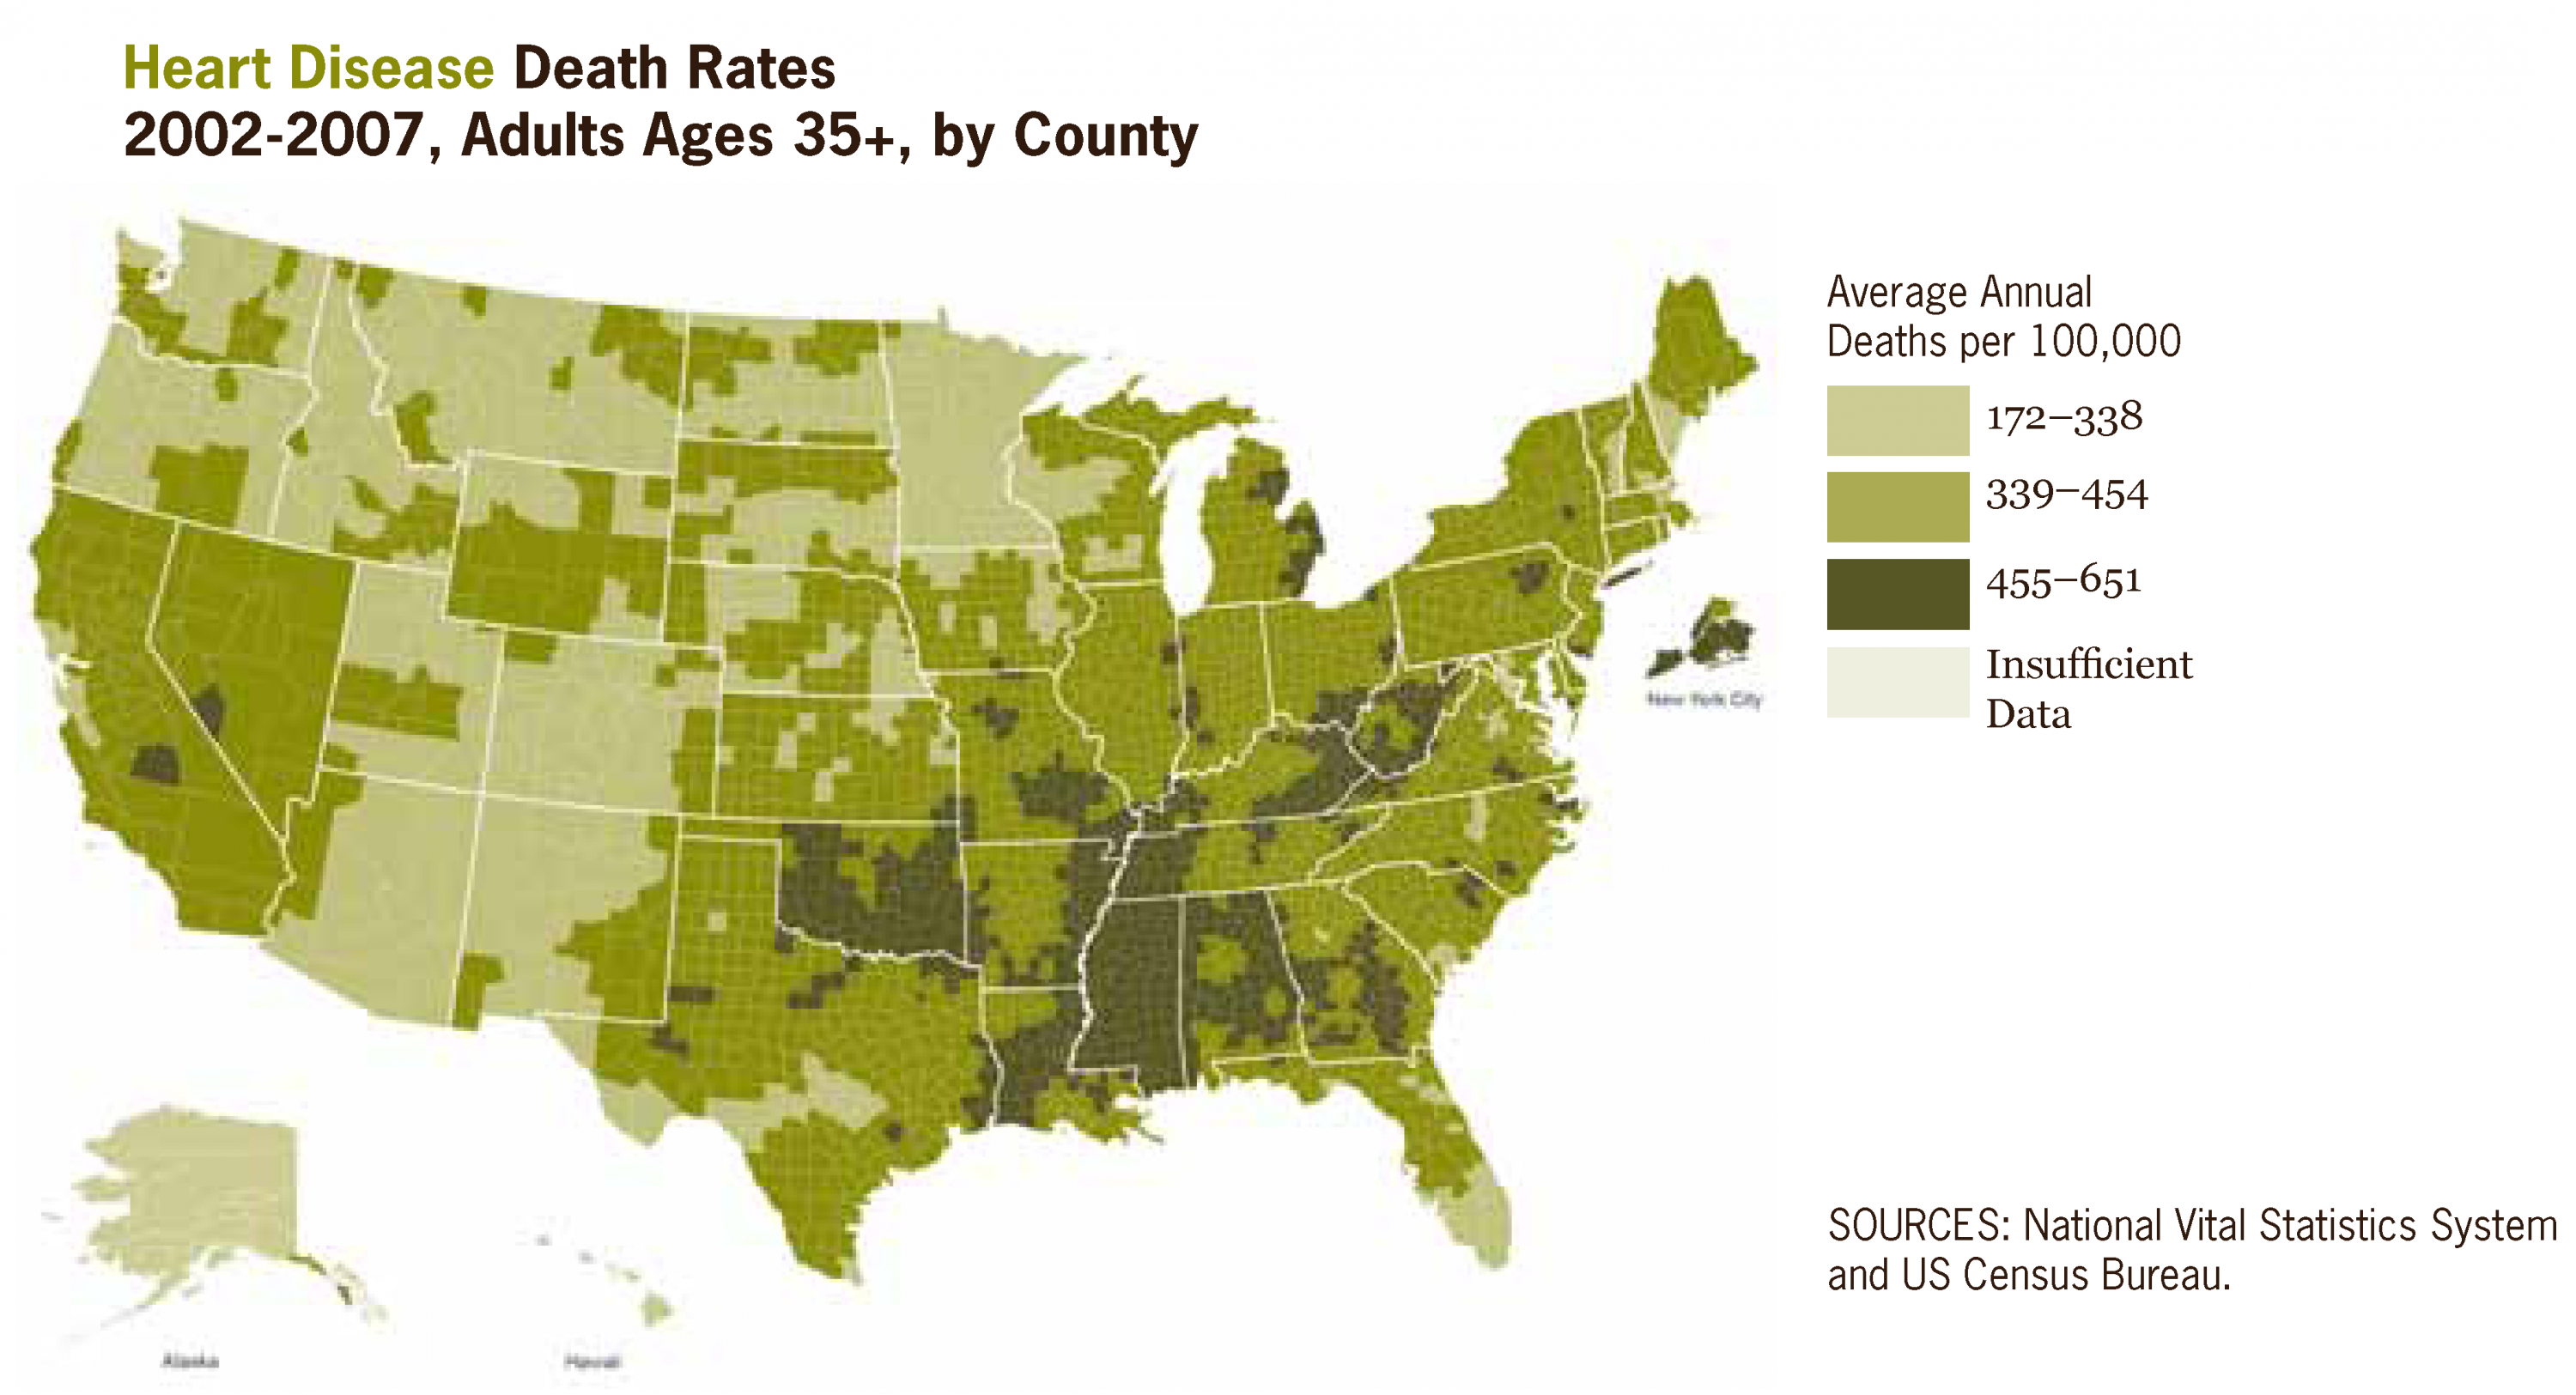 Heart_Disease_Death_Rates_2002-2007_Adults_35+_by_county_US